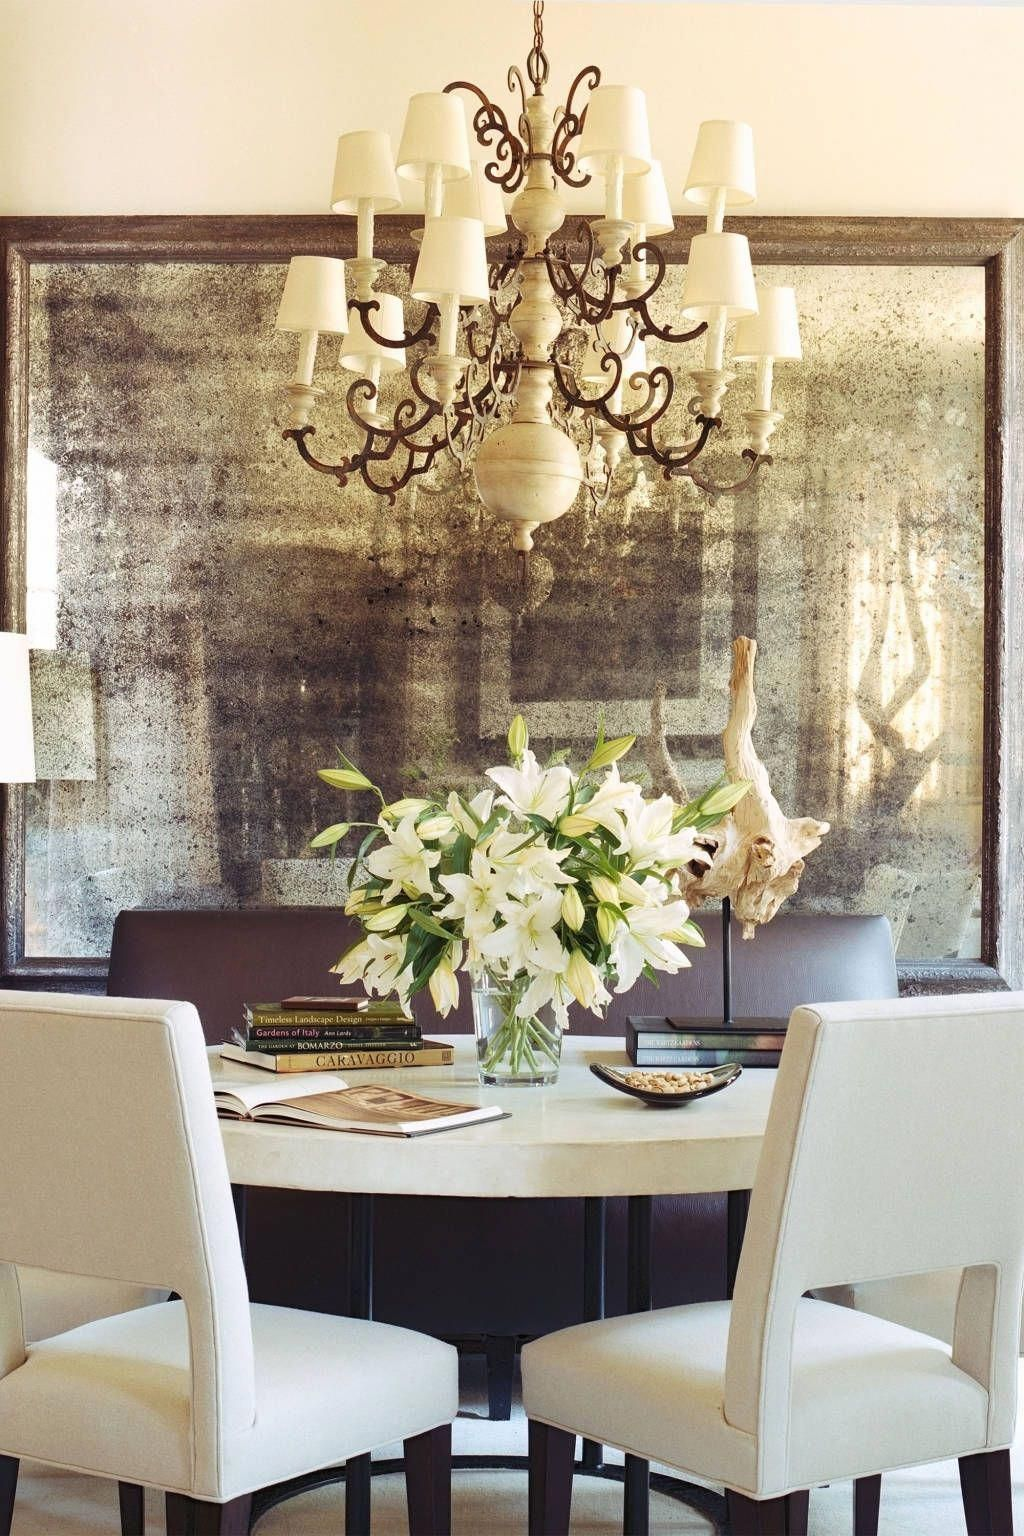 Home Decorating Tips Walldecor Mirror Dining Room Decor Home Decor Tips